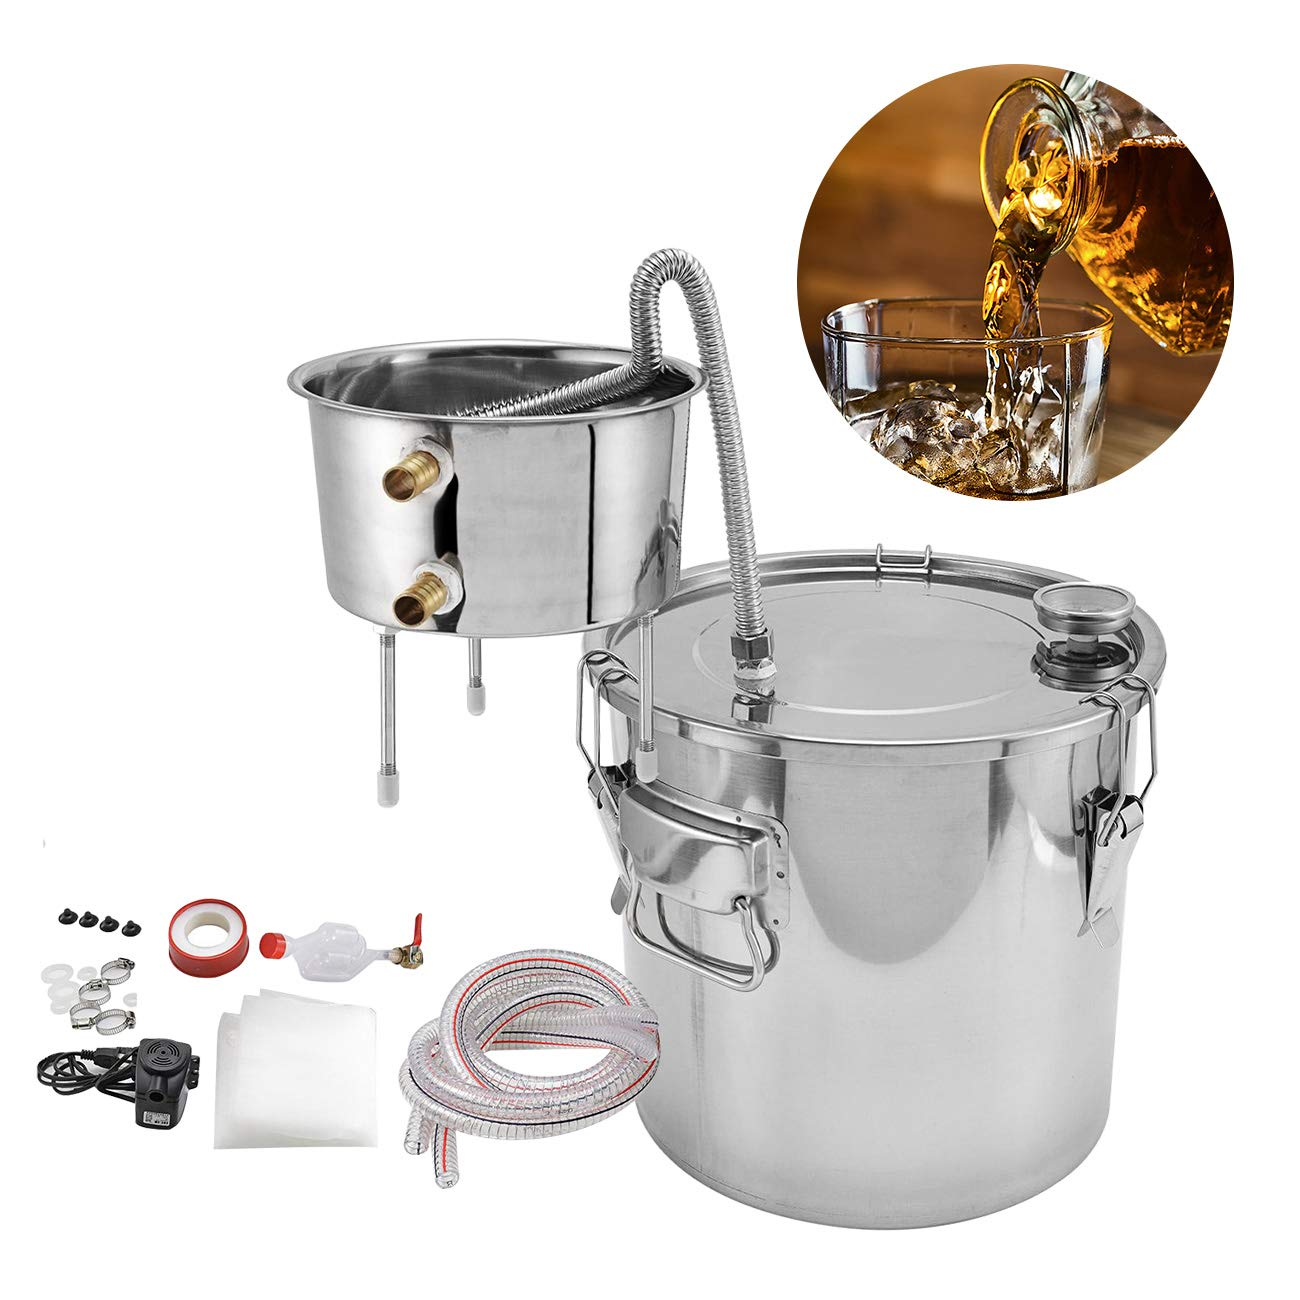 BEAMNOVA Moonshine Still Complete Kit 3 Gallon Stainless Steel Thermometer Water Pump Spirits Alcohol Water Distiller Essential Oils Hydrolat Maker